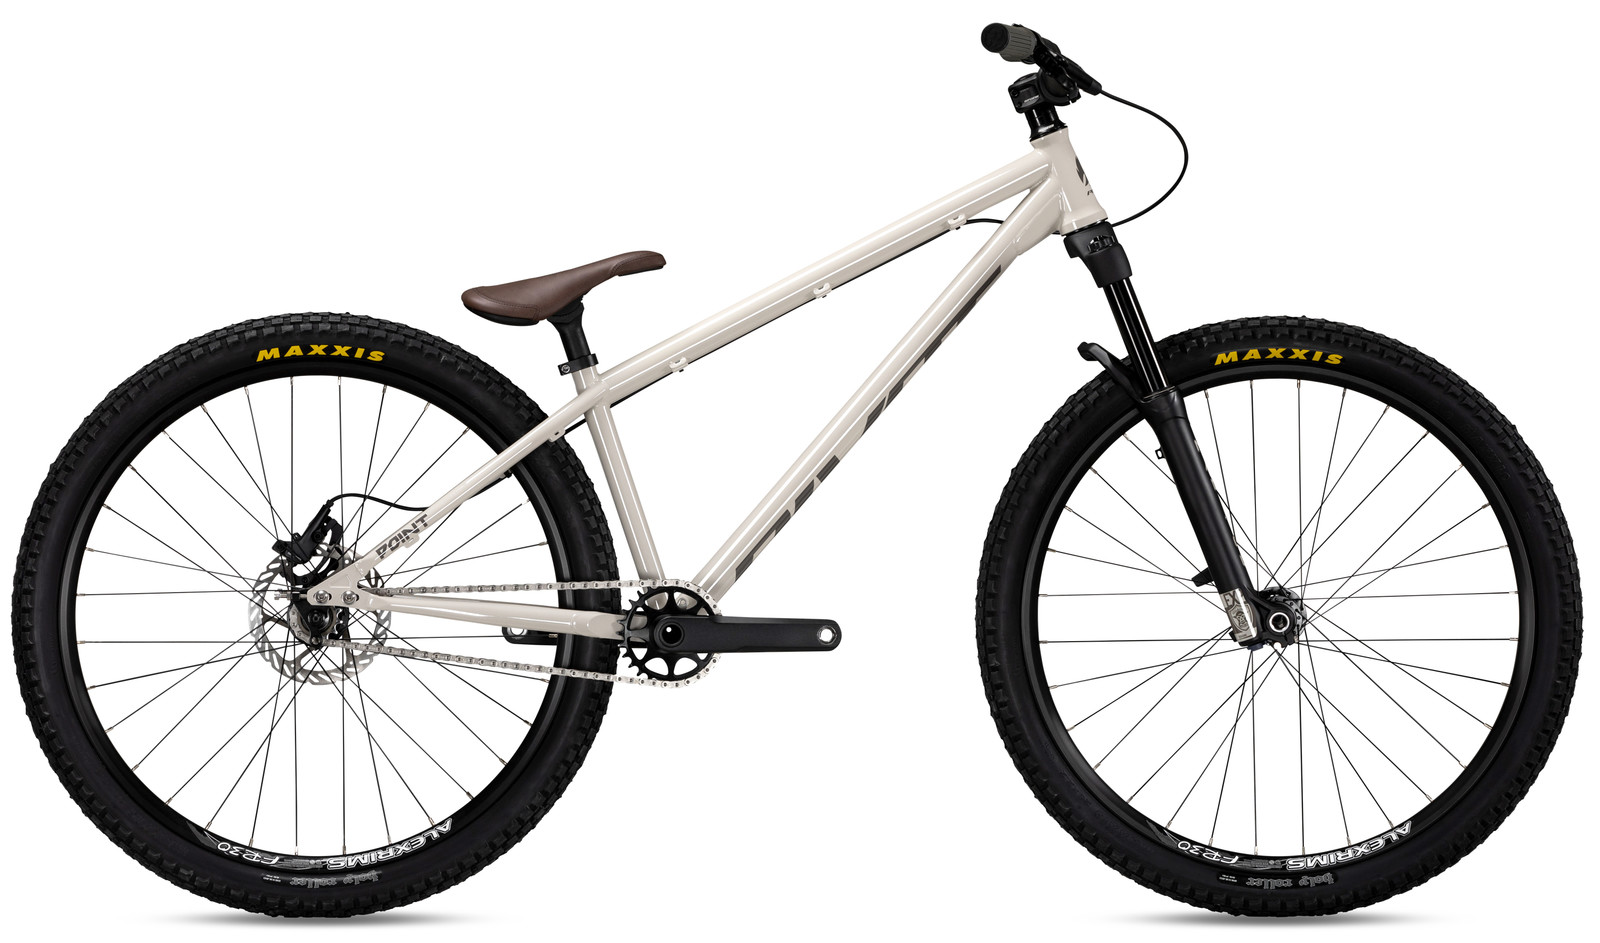 Pivot Point Dirt Jump / Pumptrack Hardtail - $1,599 complete of $599 frame-only.